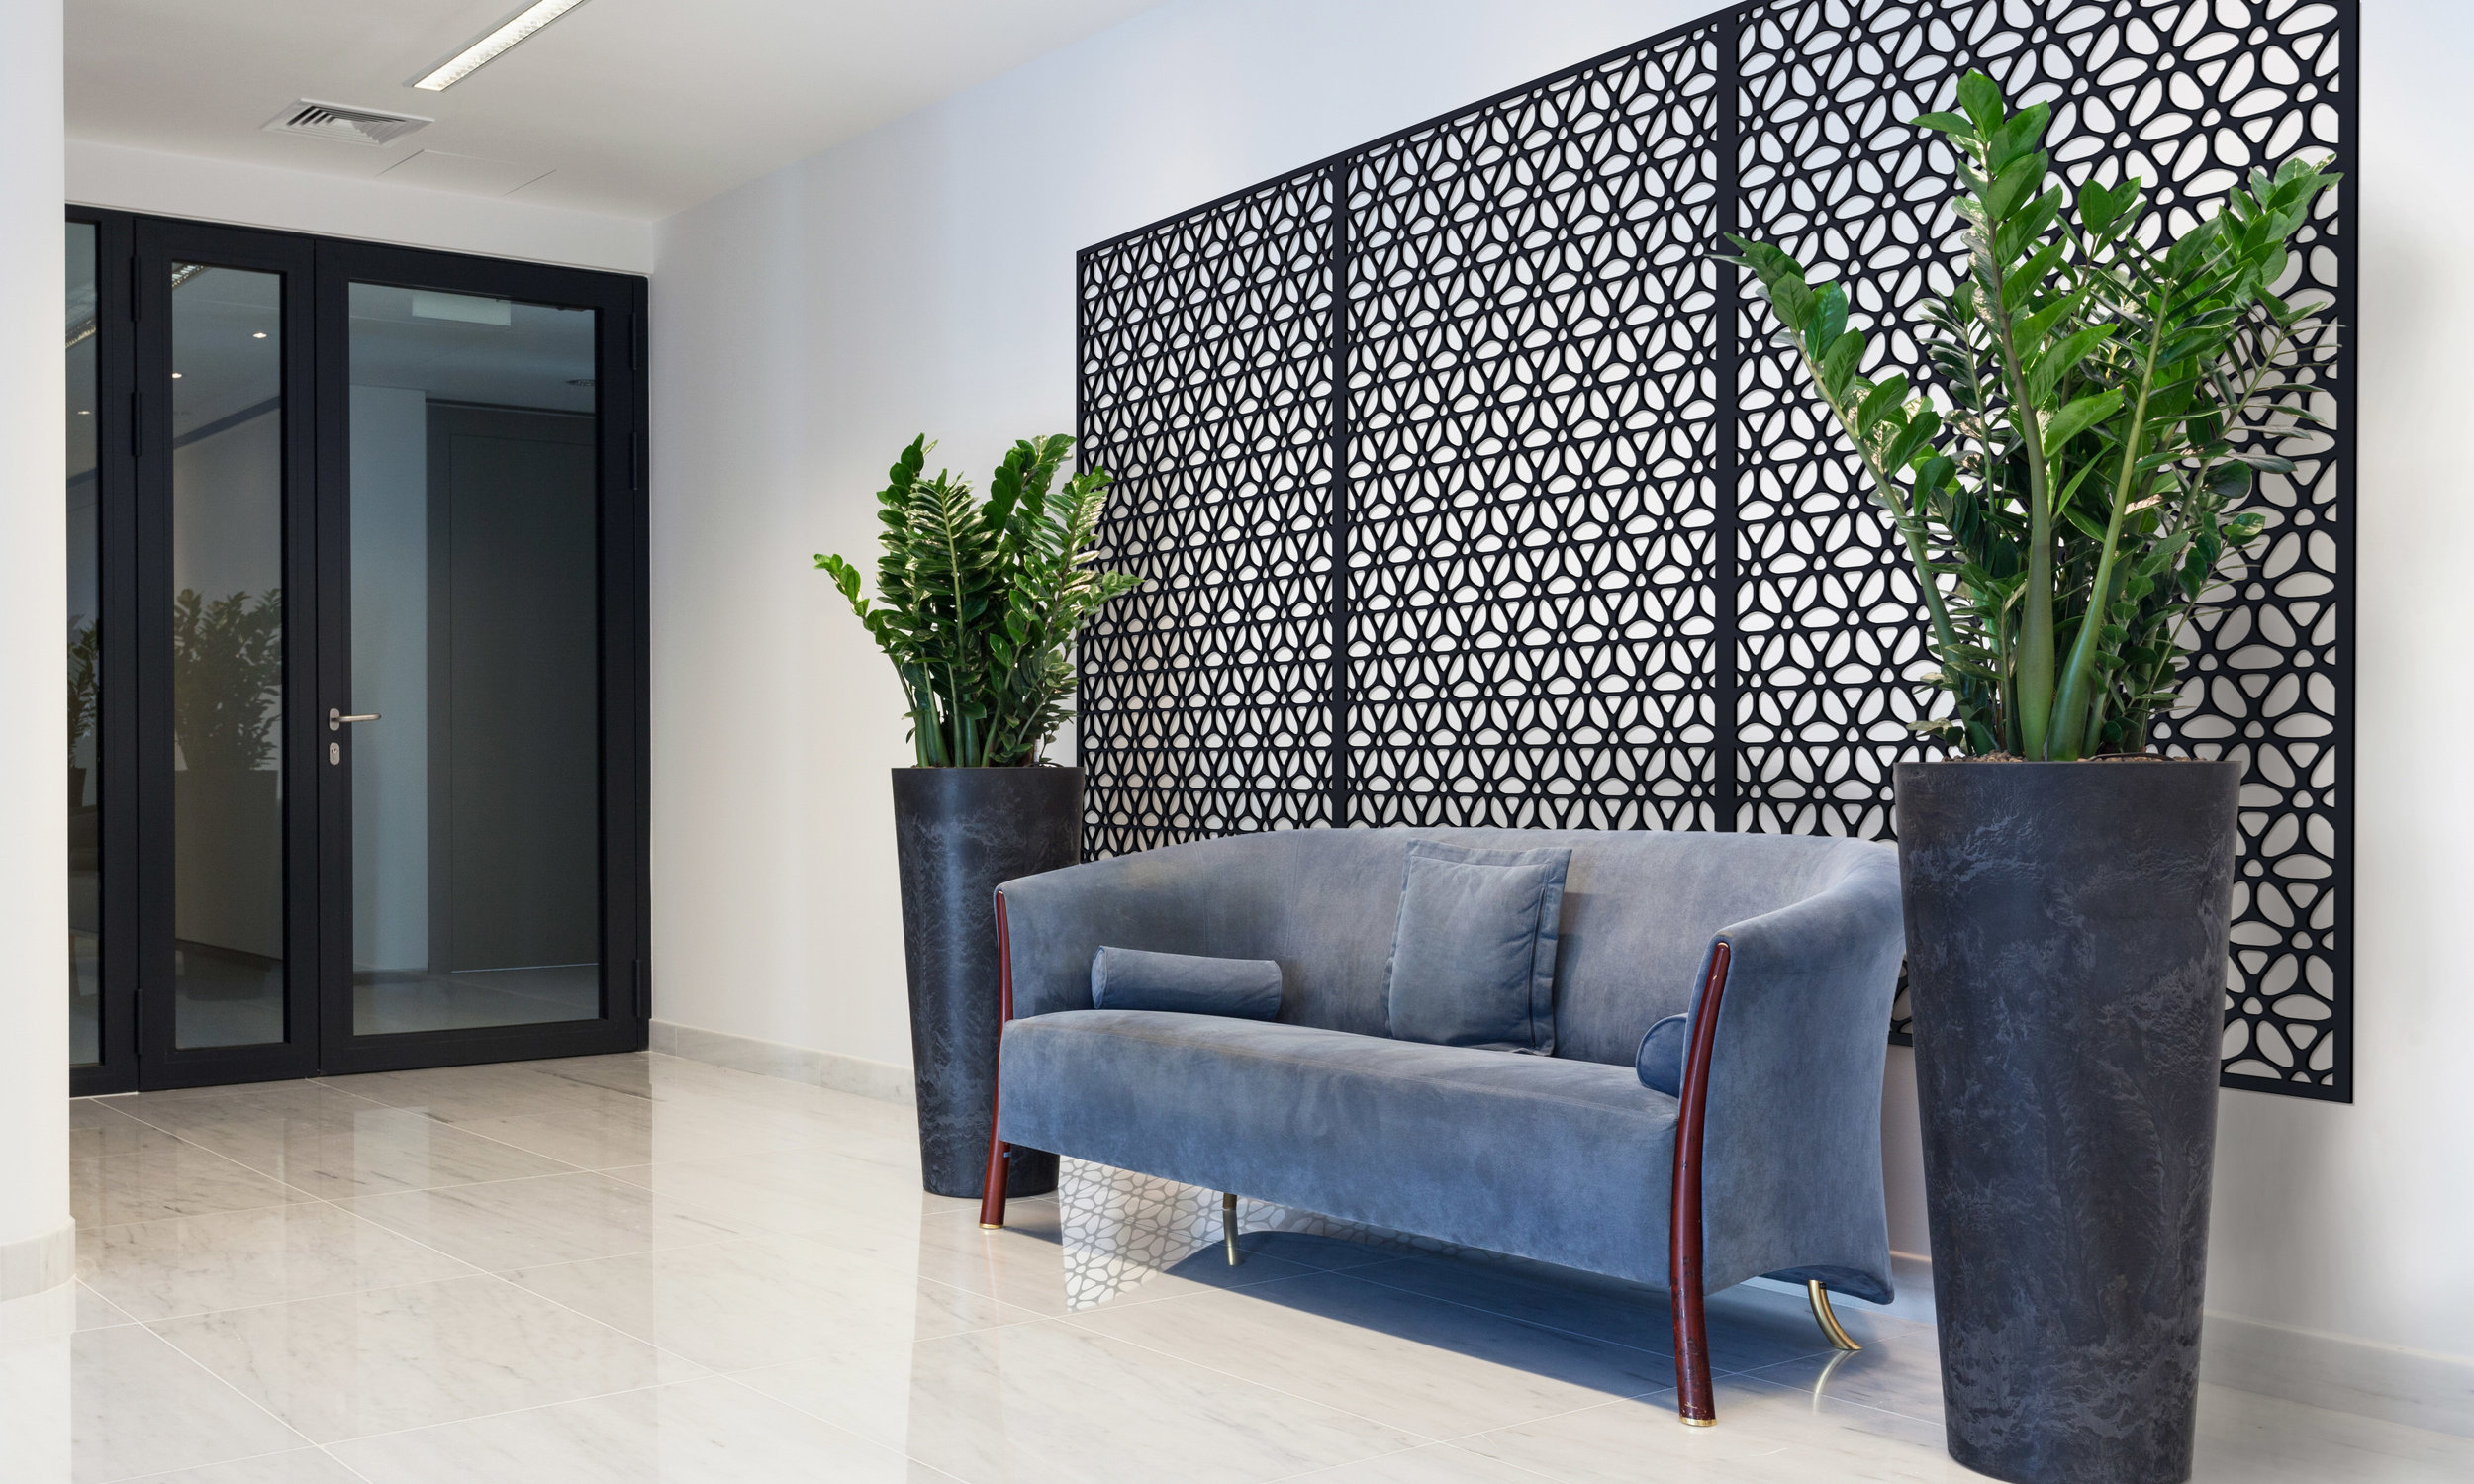 Installation Rendering B   Sao Paulo decorative office wall panel - painted